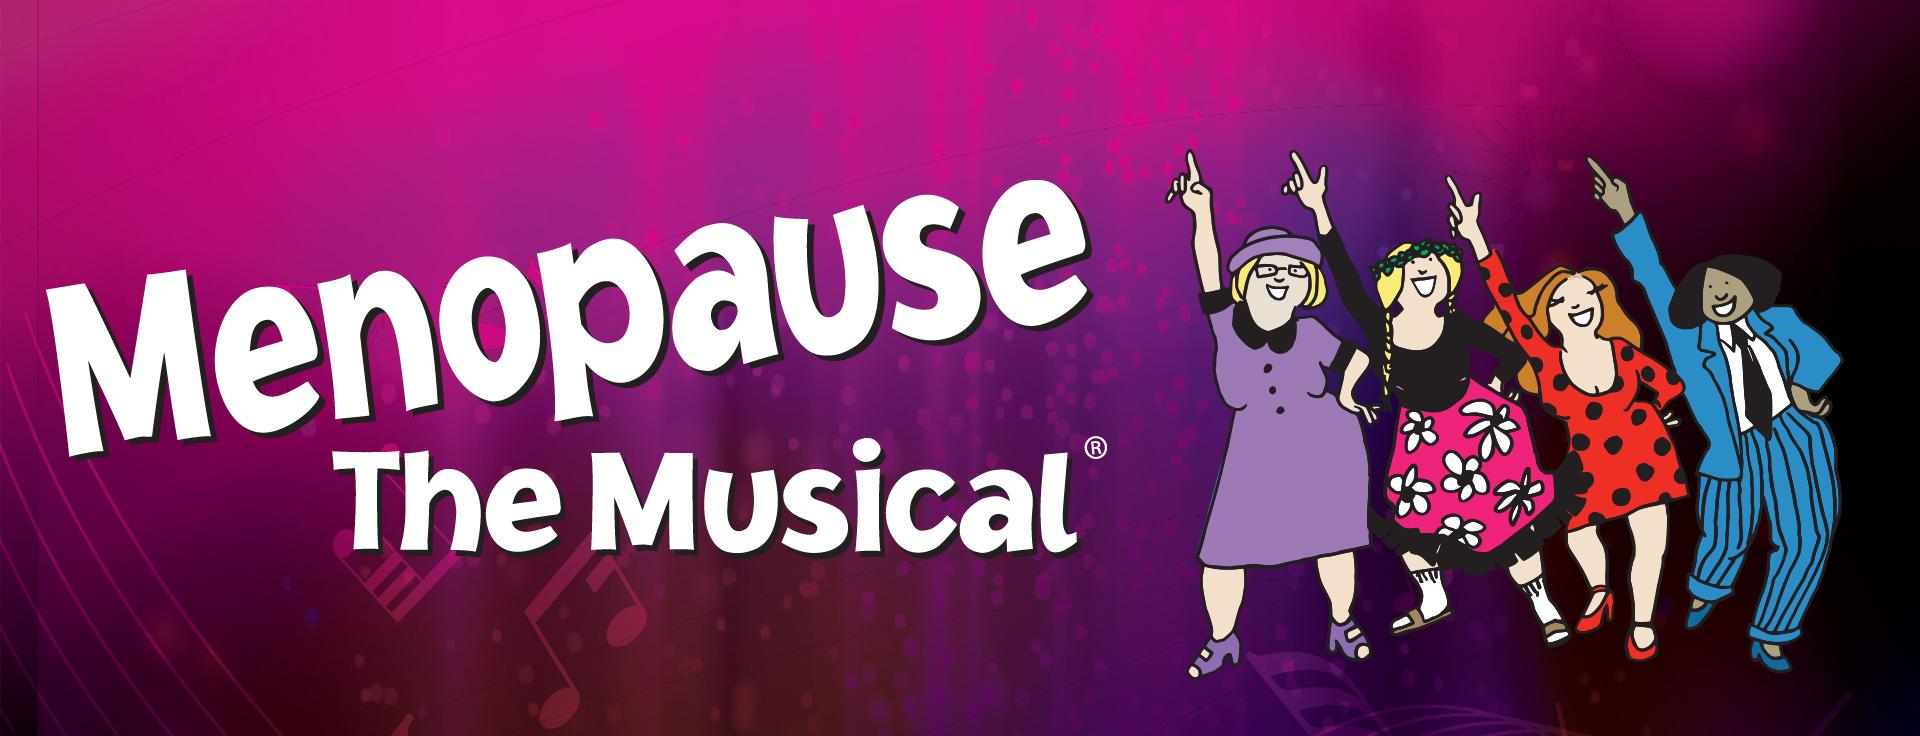 Cartoon images of Menopause the Musical dancing in a line